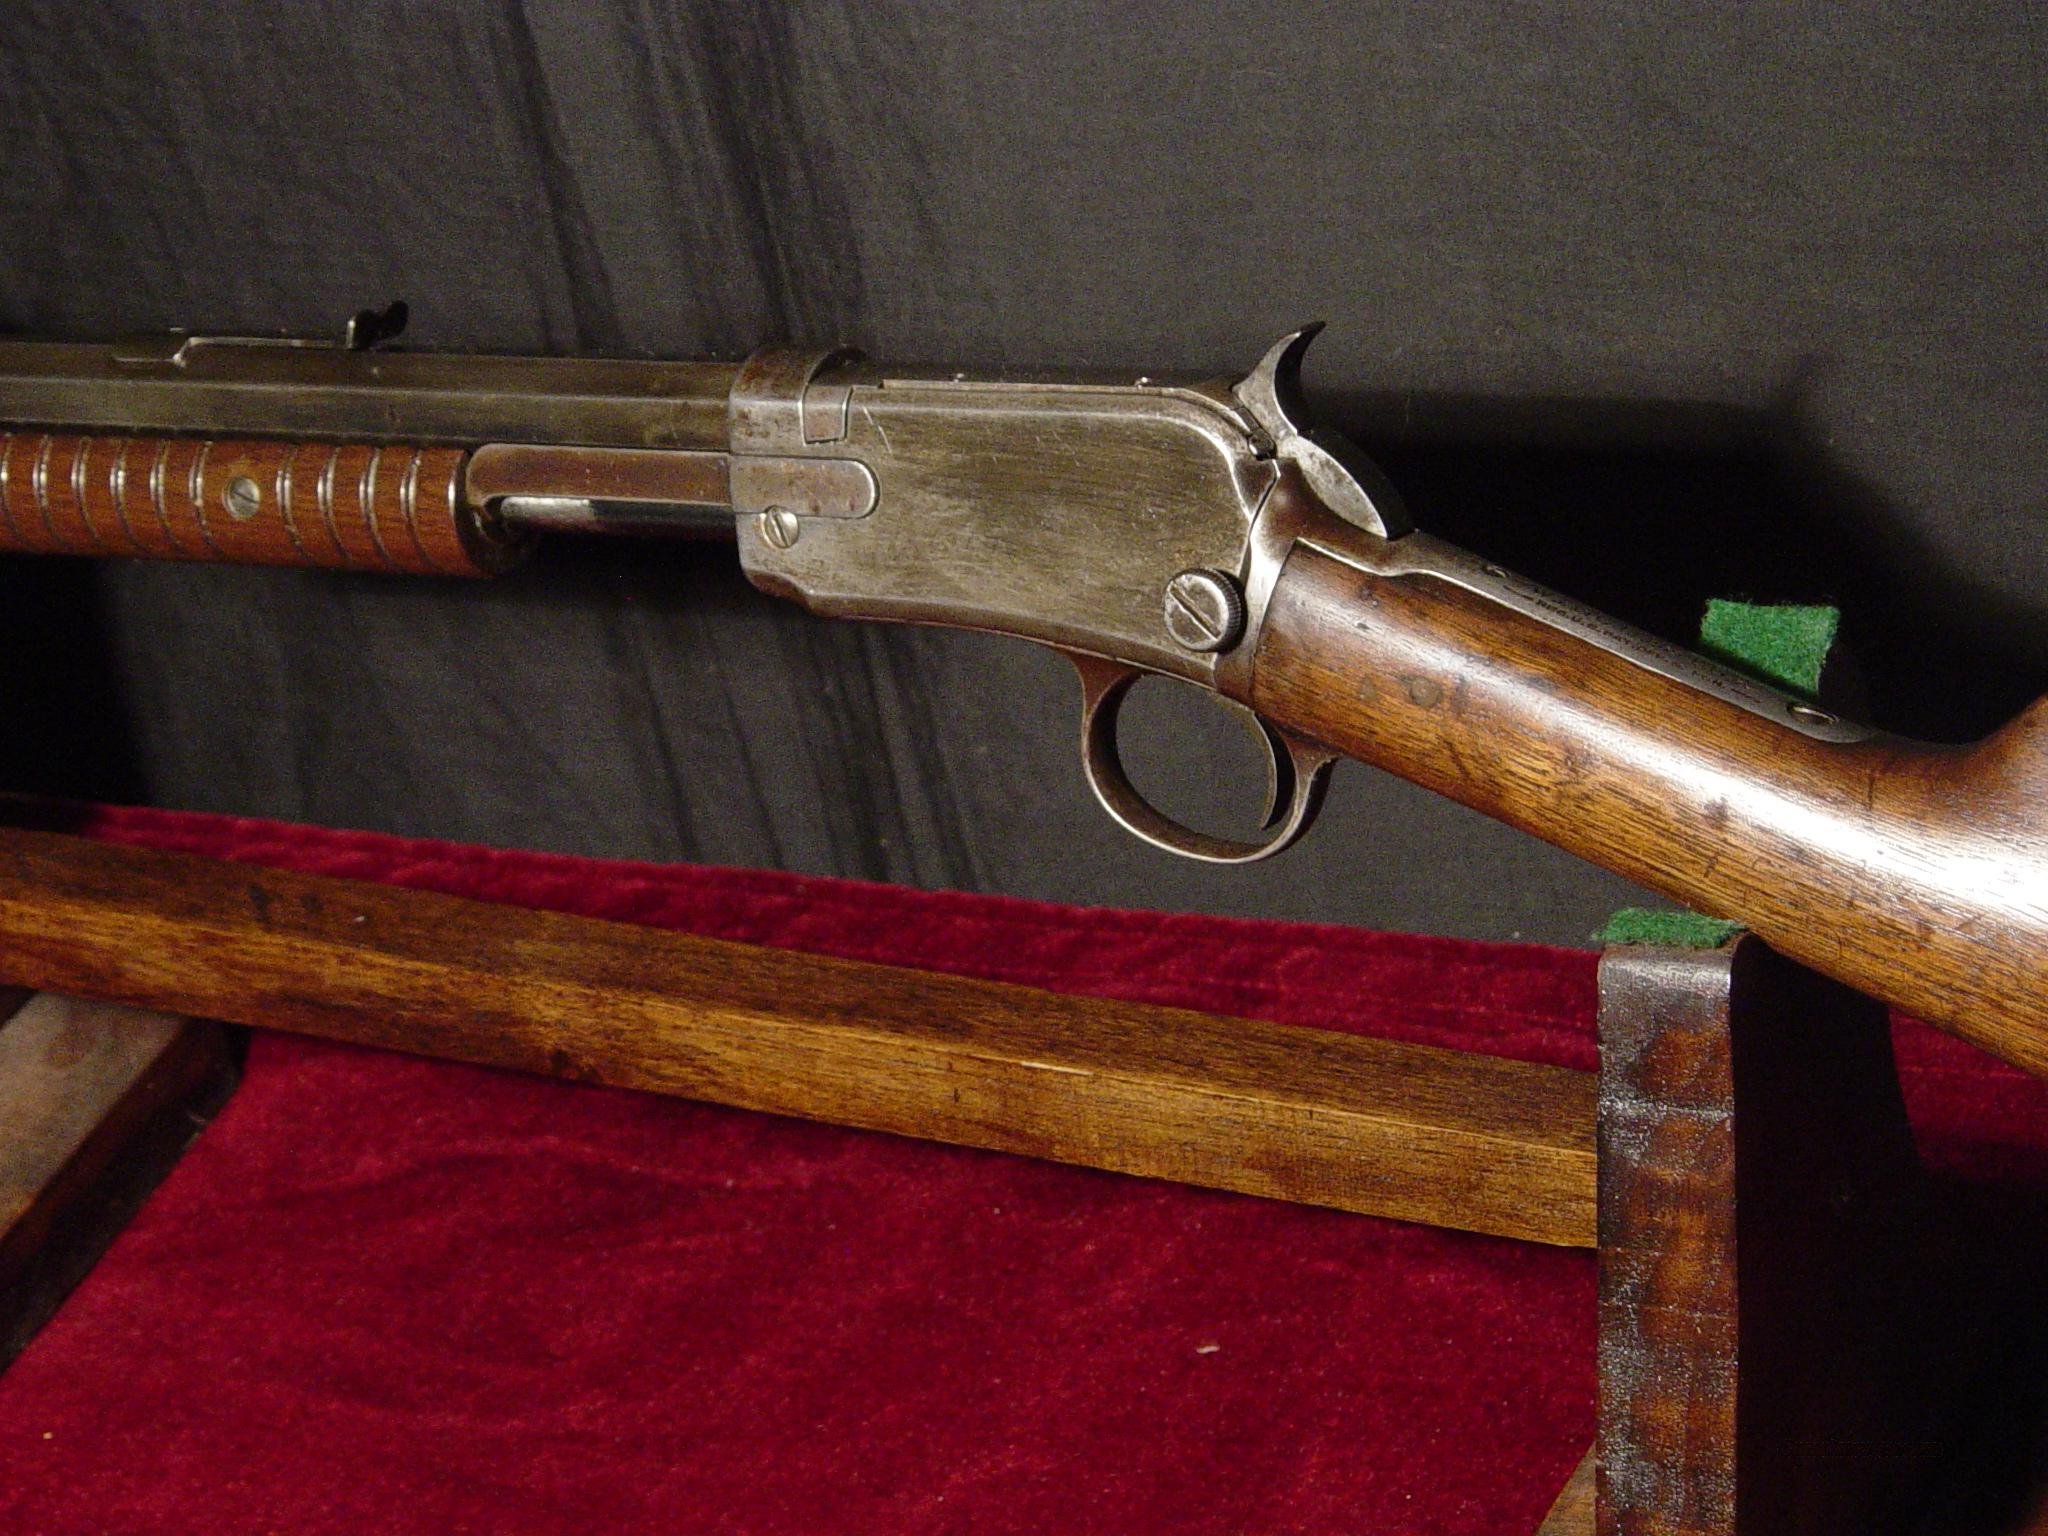 WINCHESTER 1890 OCT 22 LONG  Guns > Rifles > Winchester Rifles - Modern Pump